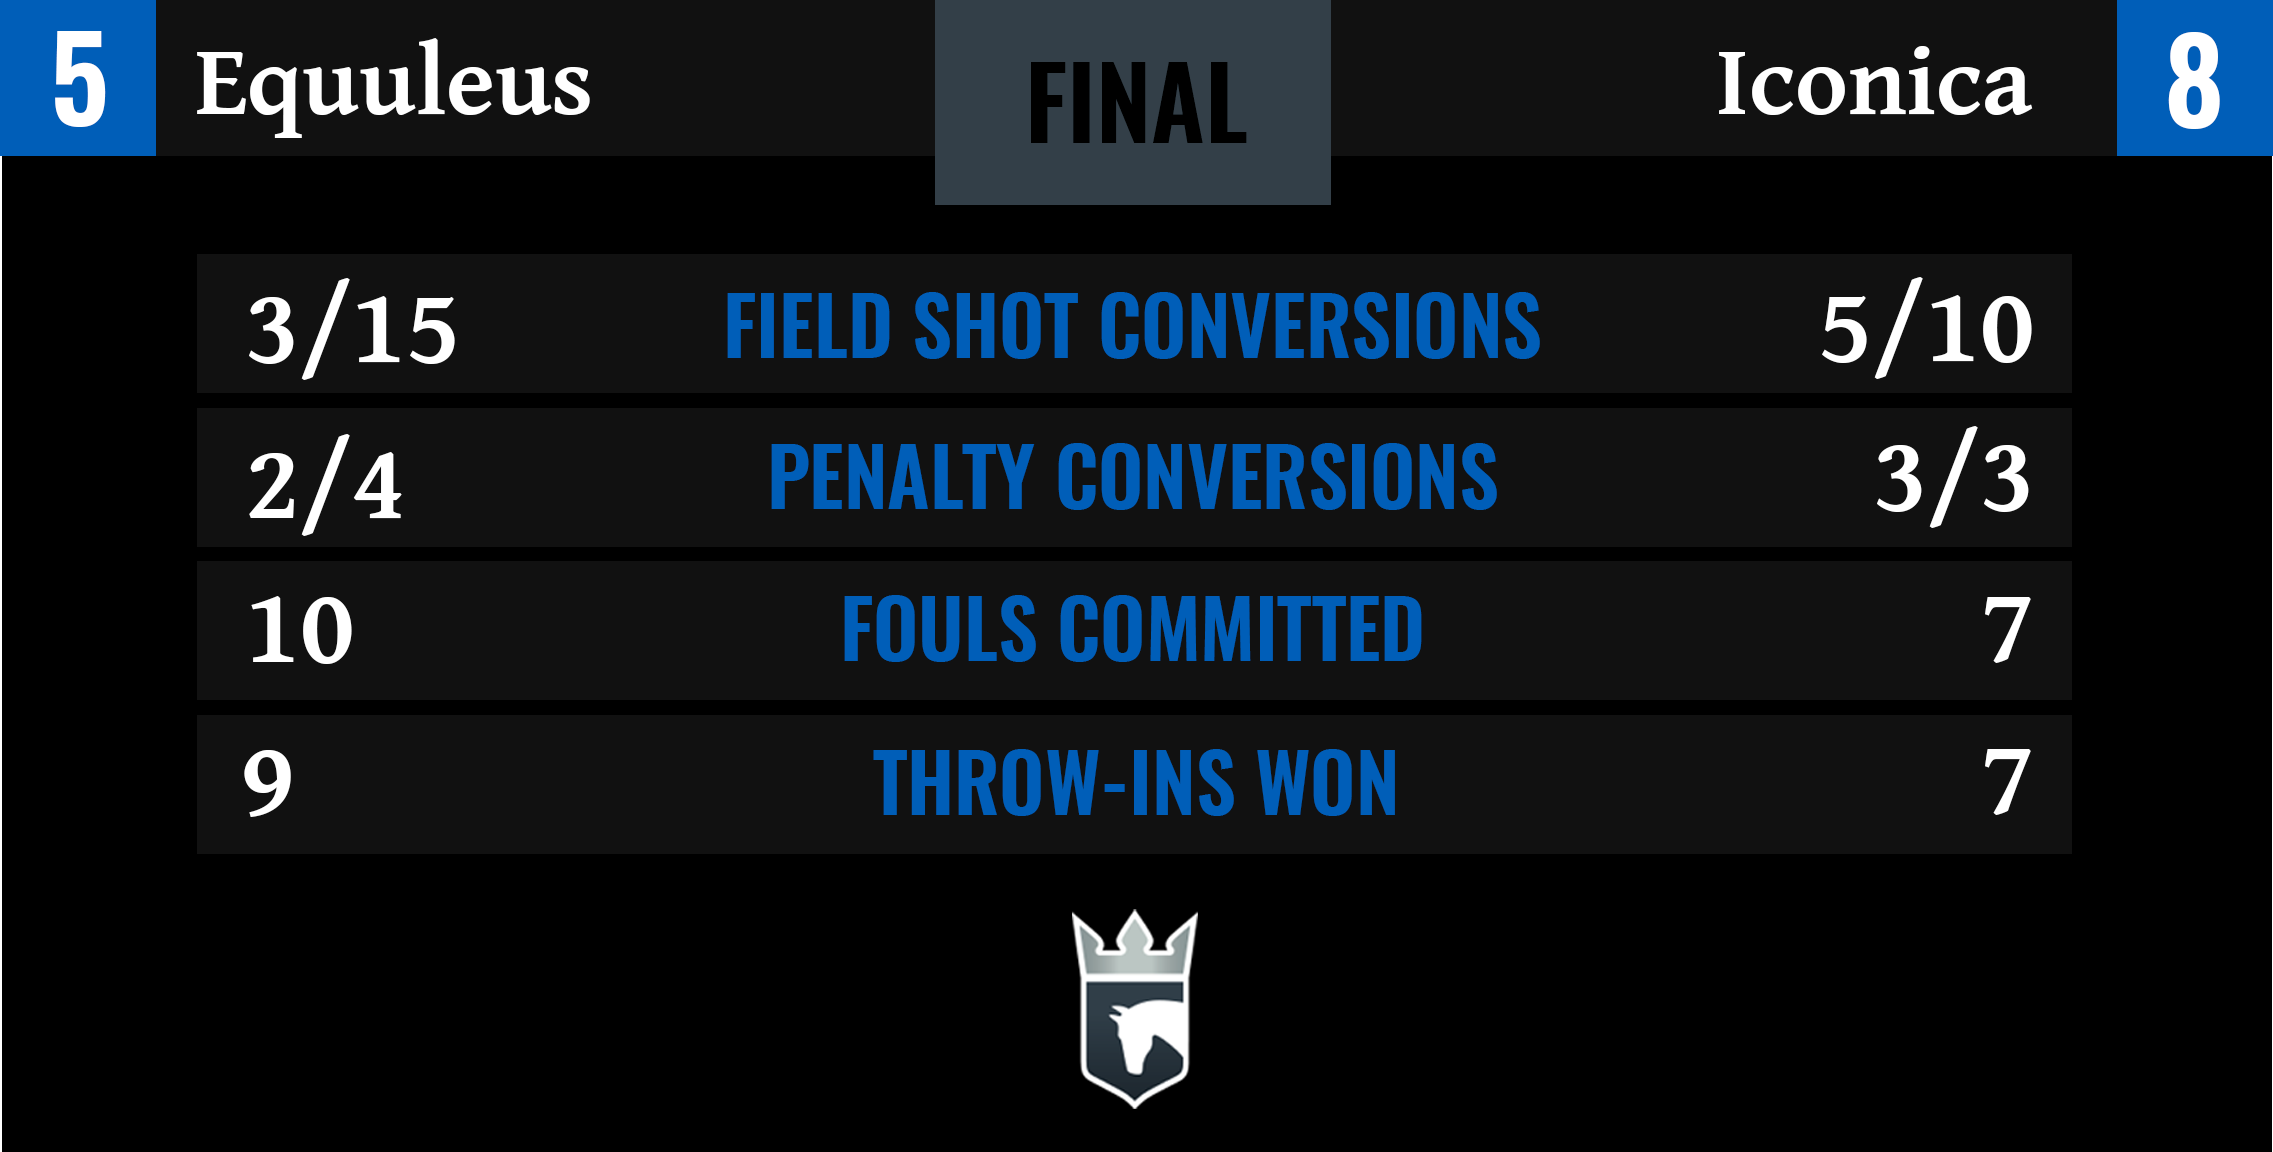 Equuleus vs Iconica Final Stats-1